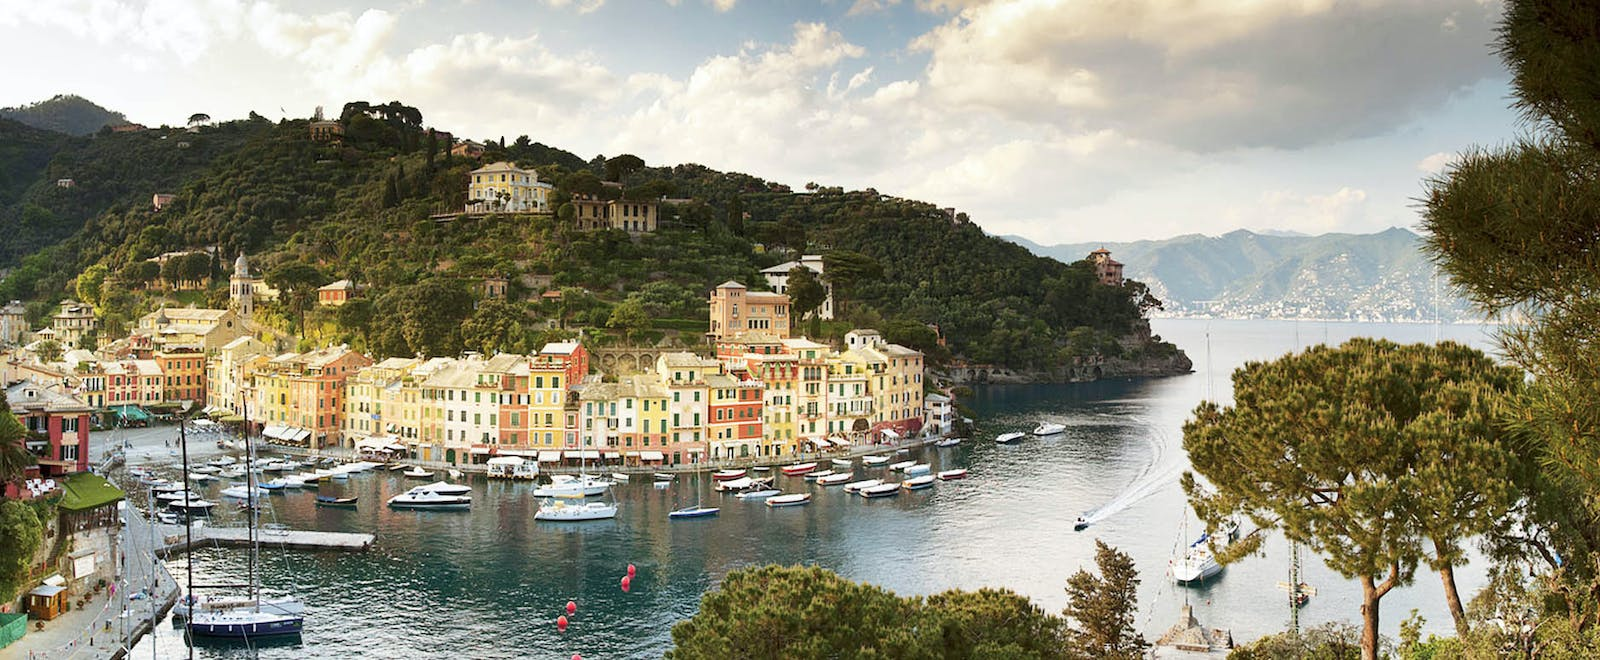 Belmond Splendido Mare Holidays - Luxury Hotel In Portofino